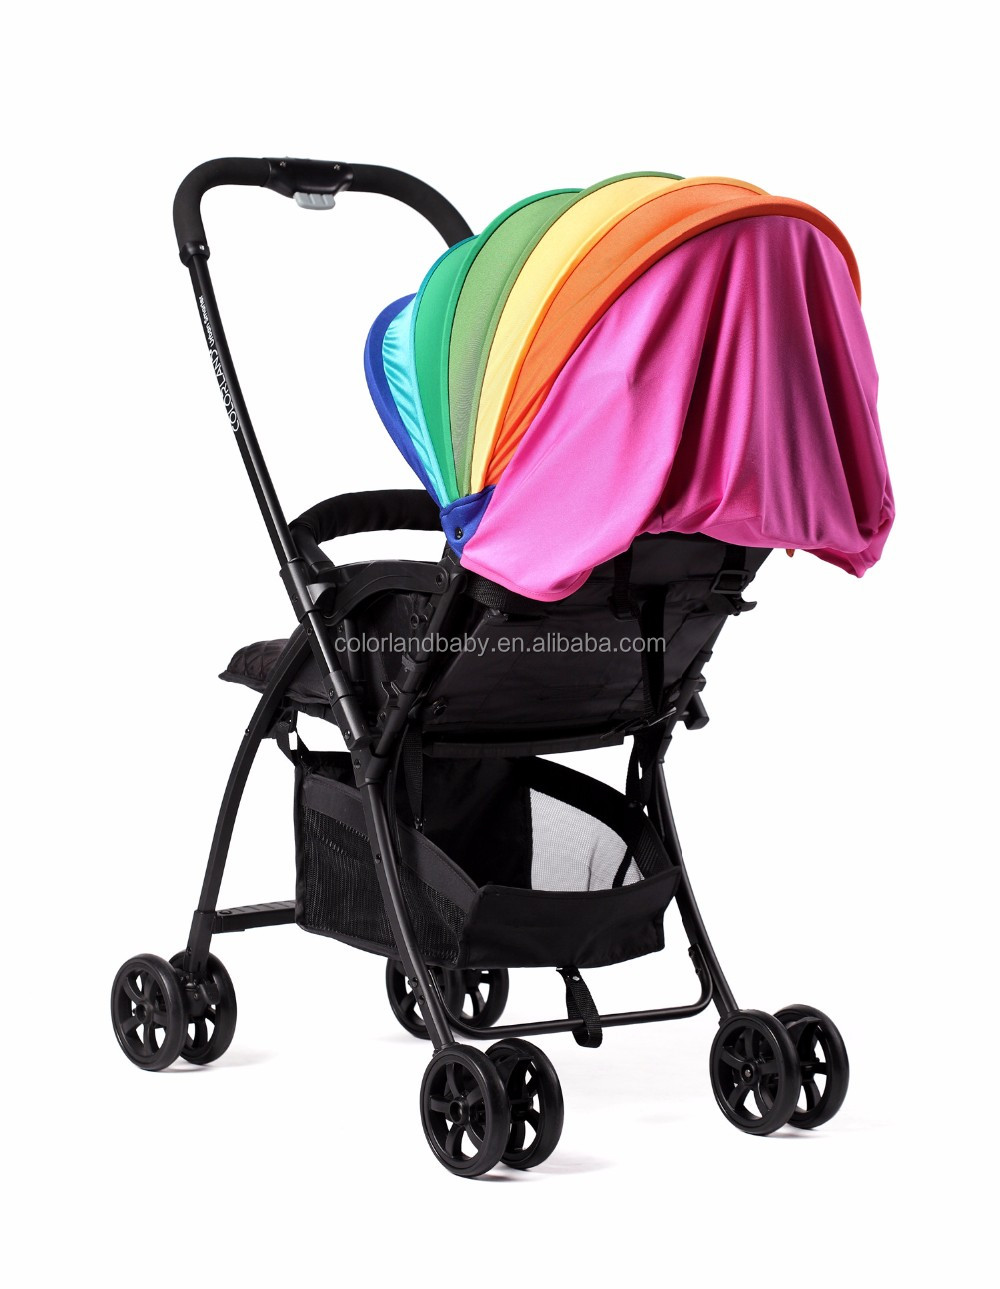 Exported to USA Market Folding Baby Stroller Foldable Baby Stroller Pram Baby Stroller Carriage